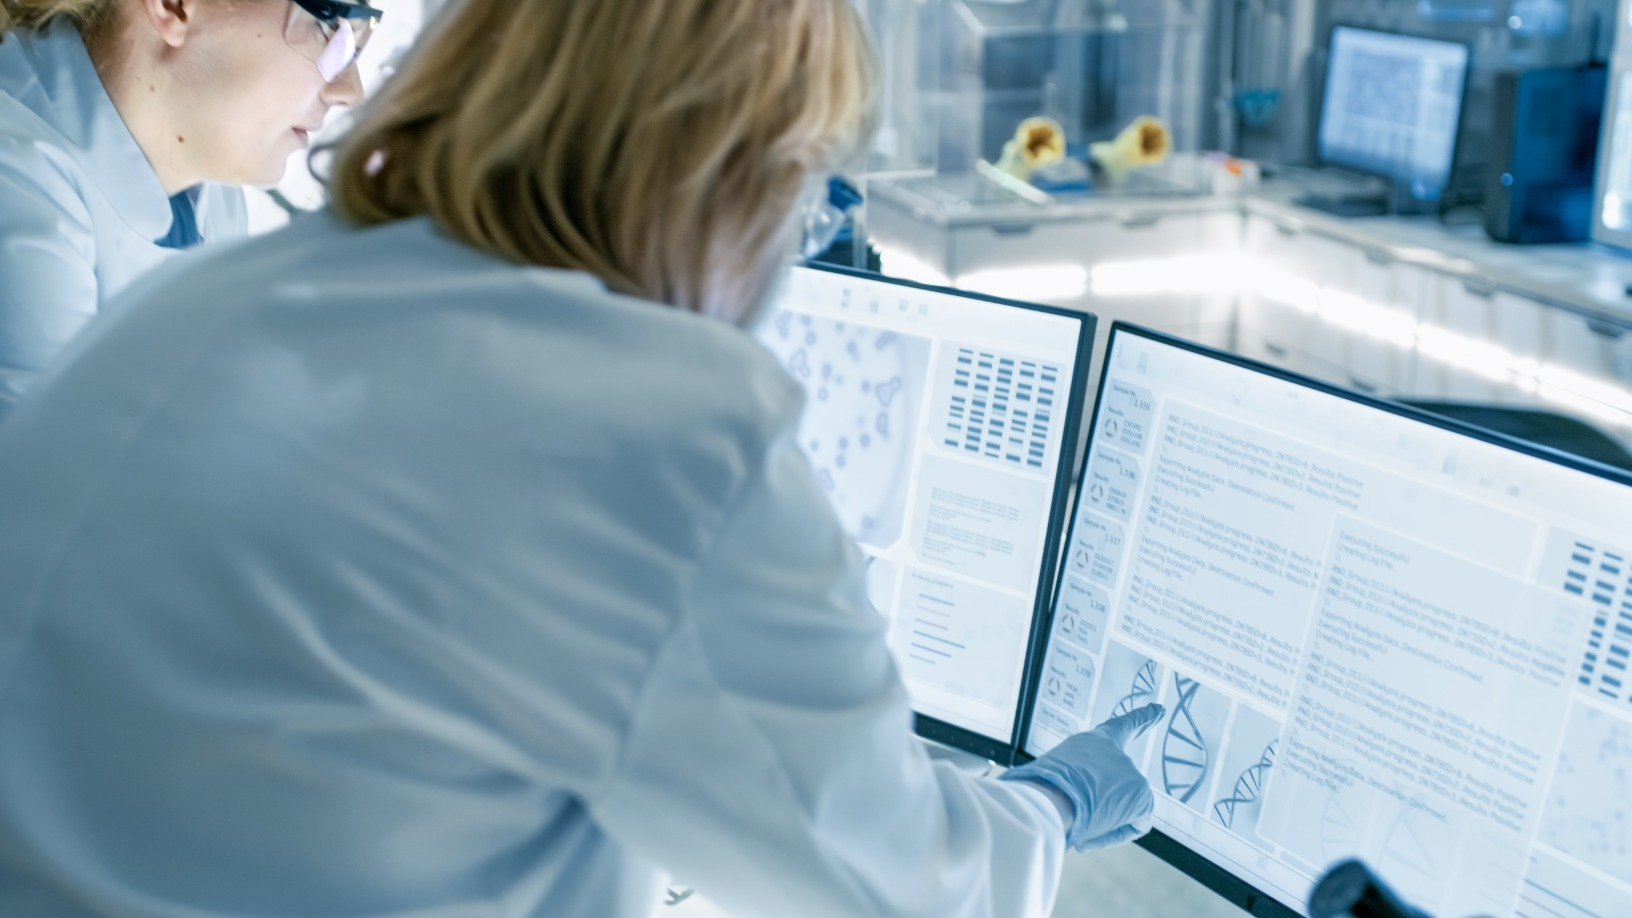 IOMED: Delivering structured, extractable patient big data and helping Spain's Covid-19 response